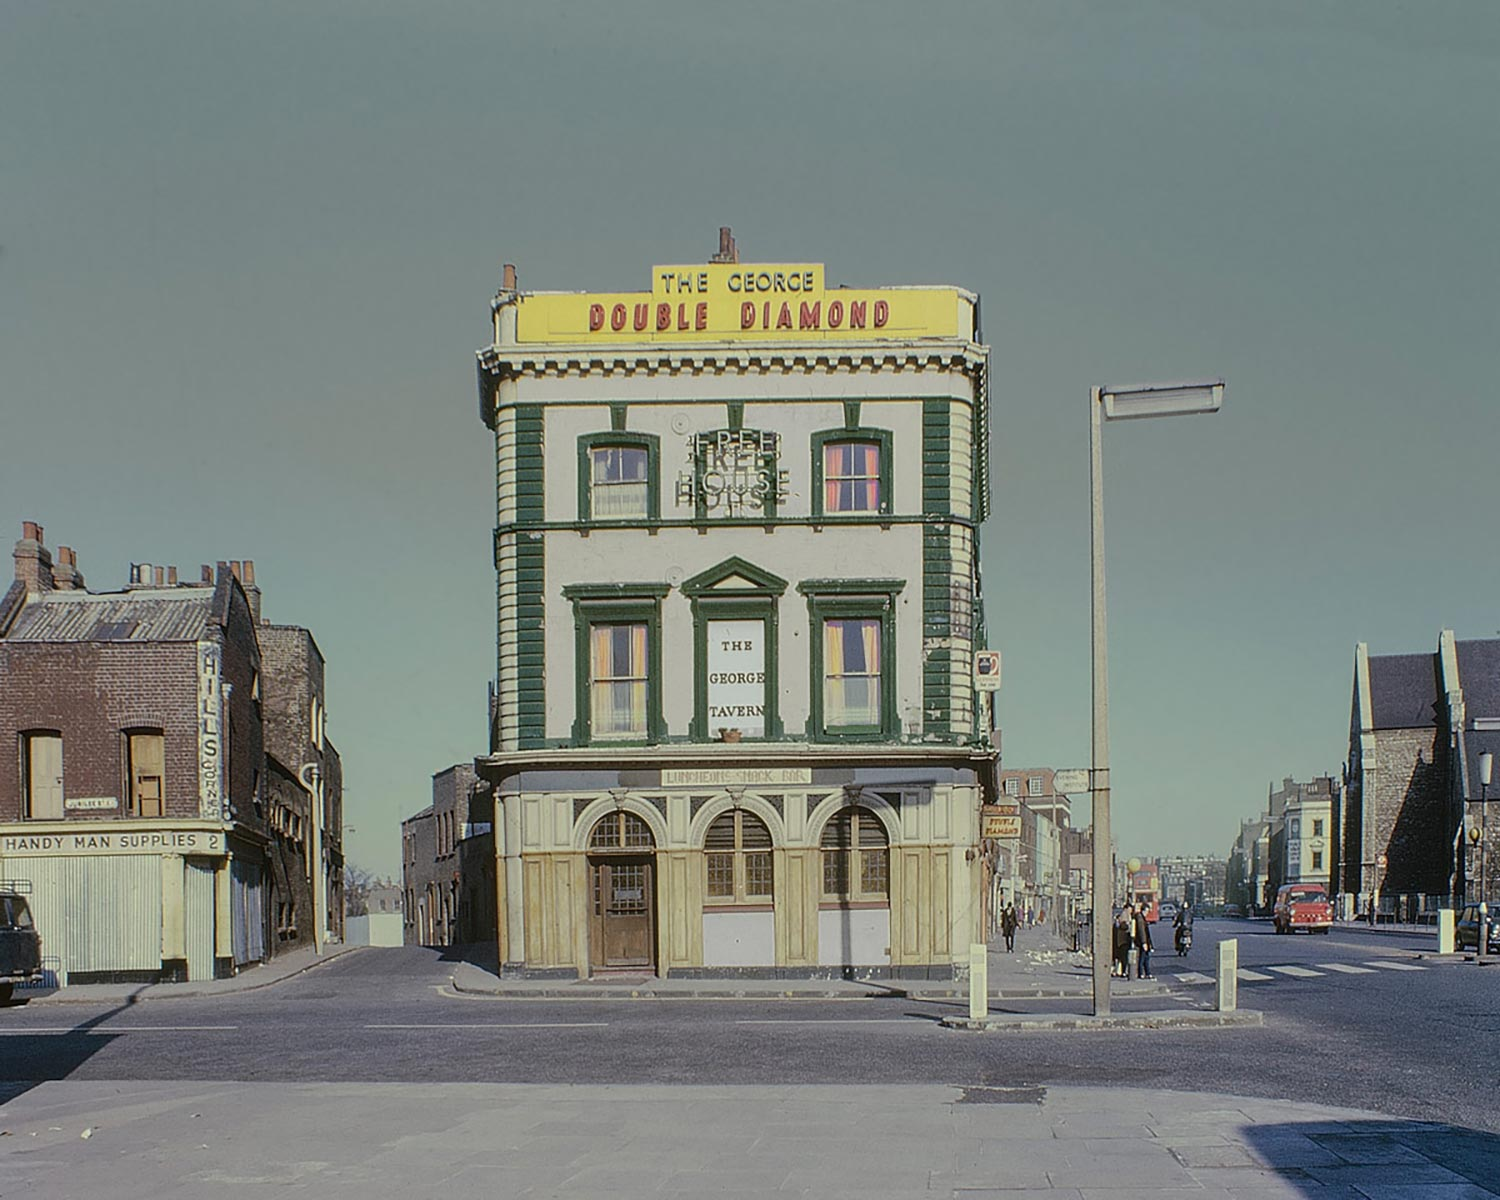 David Granick photograph of The George Tavern